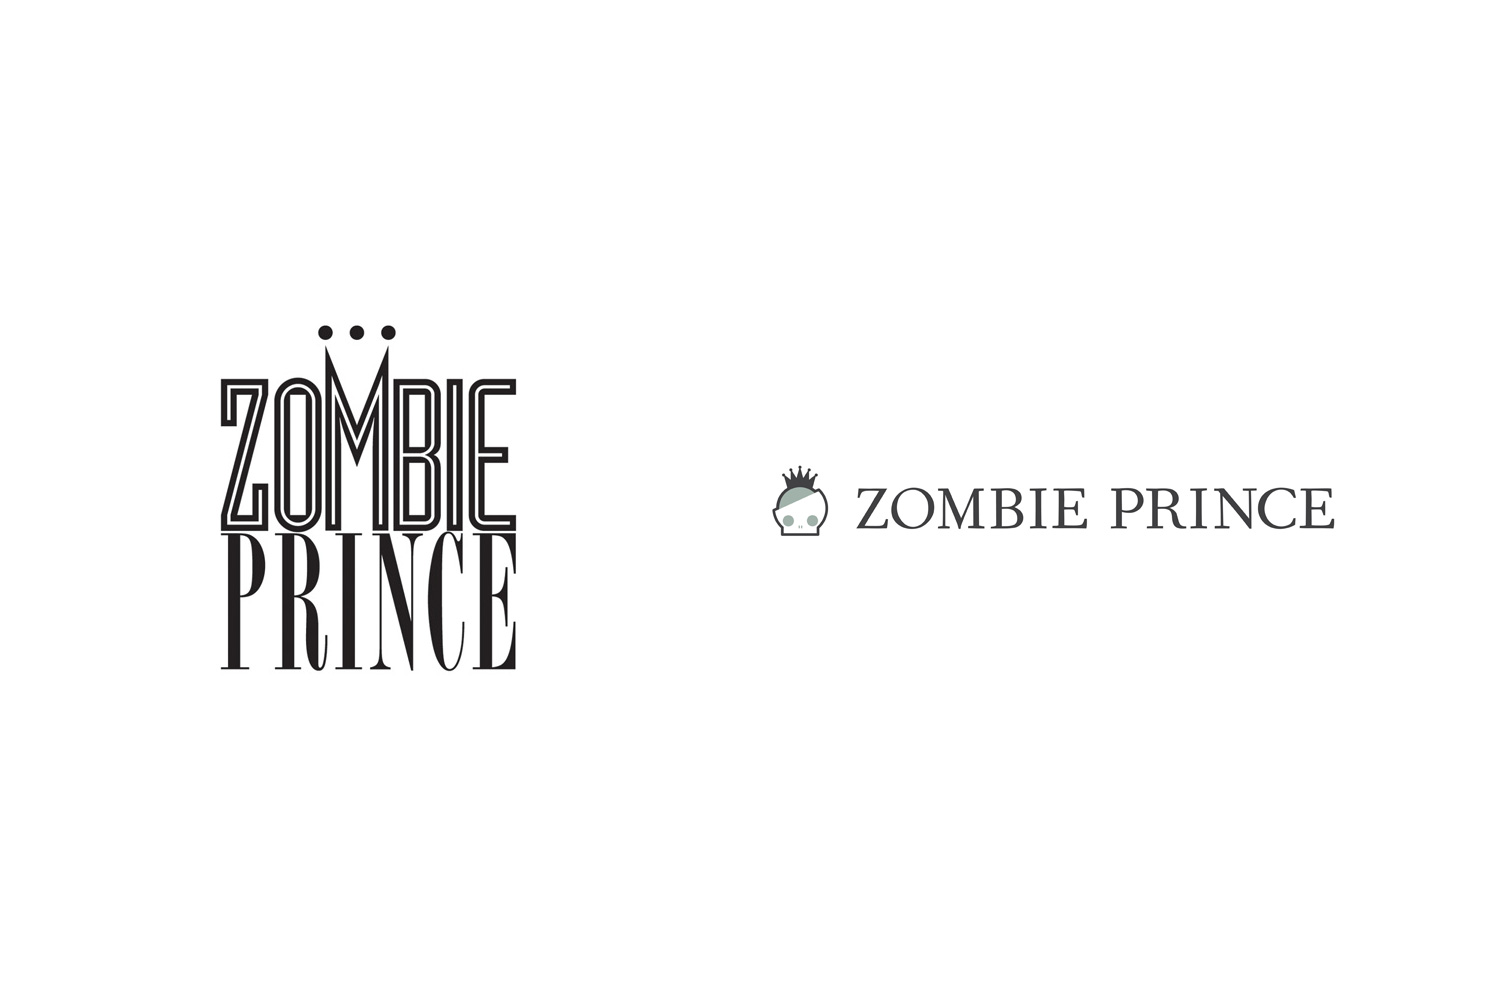 zombie_prince-logo-before_after.jpg